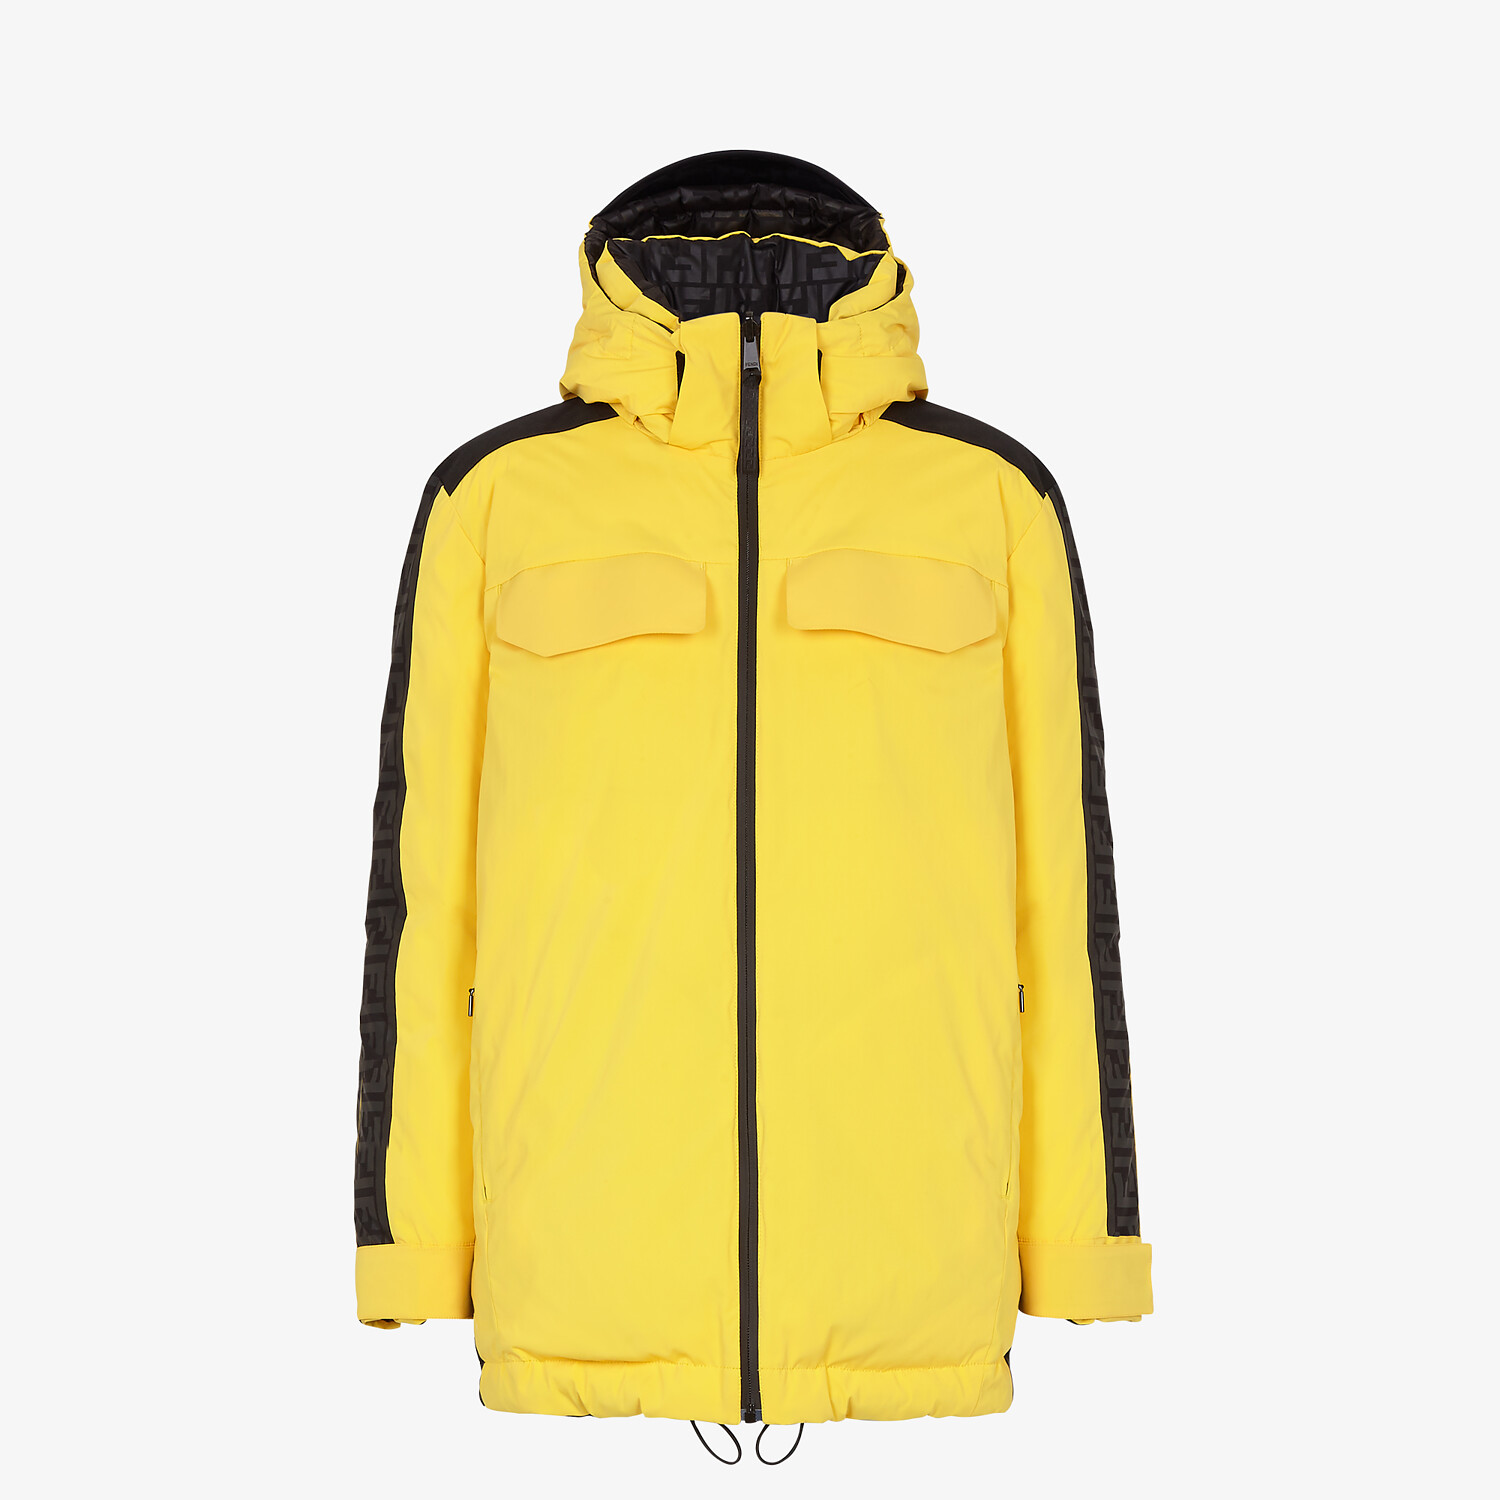 FENDI SKI JACKET - Ski jacket in yellow tech nylon - view 1 detail